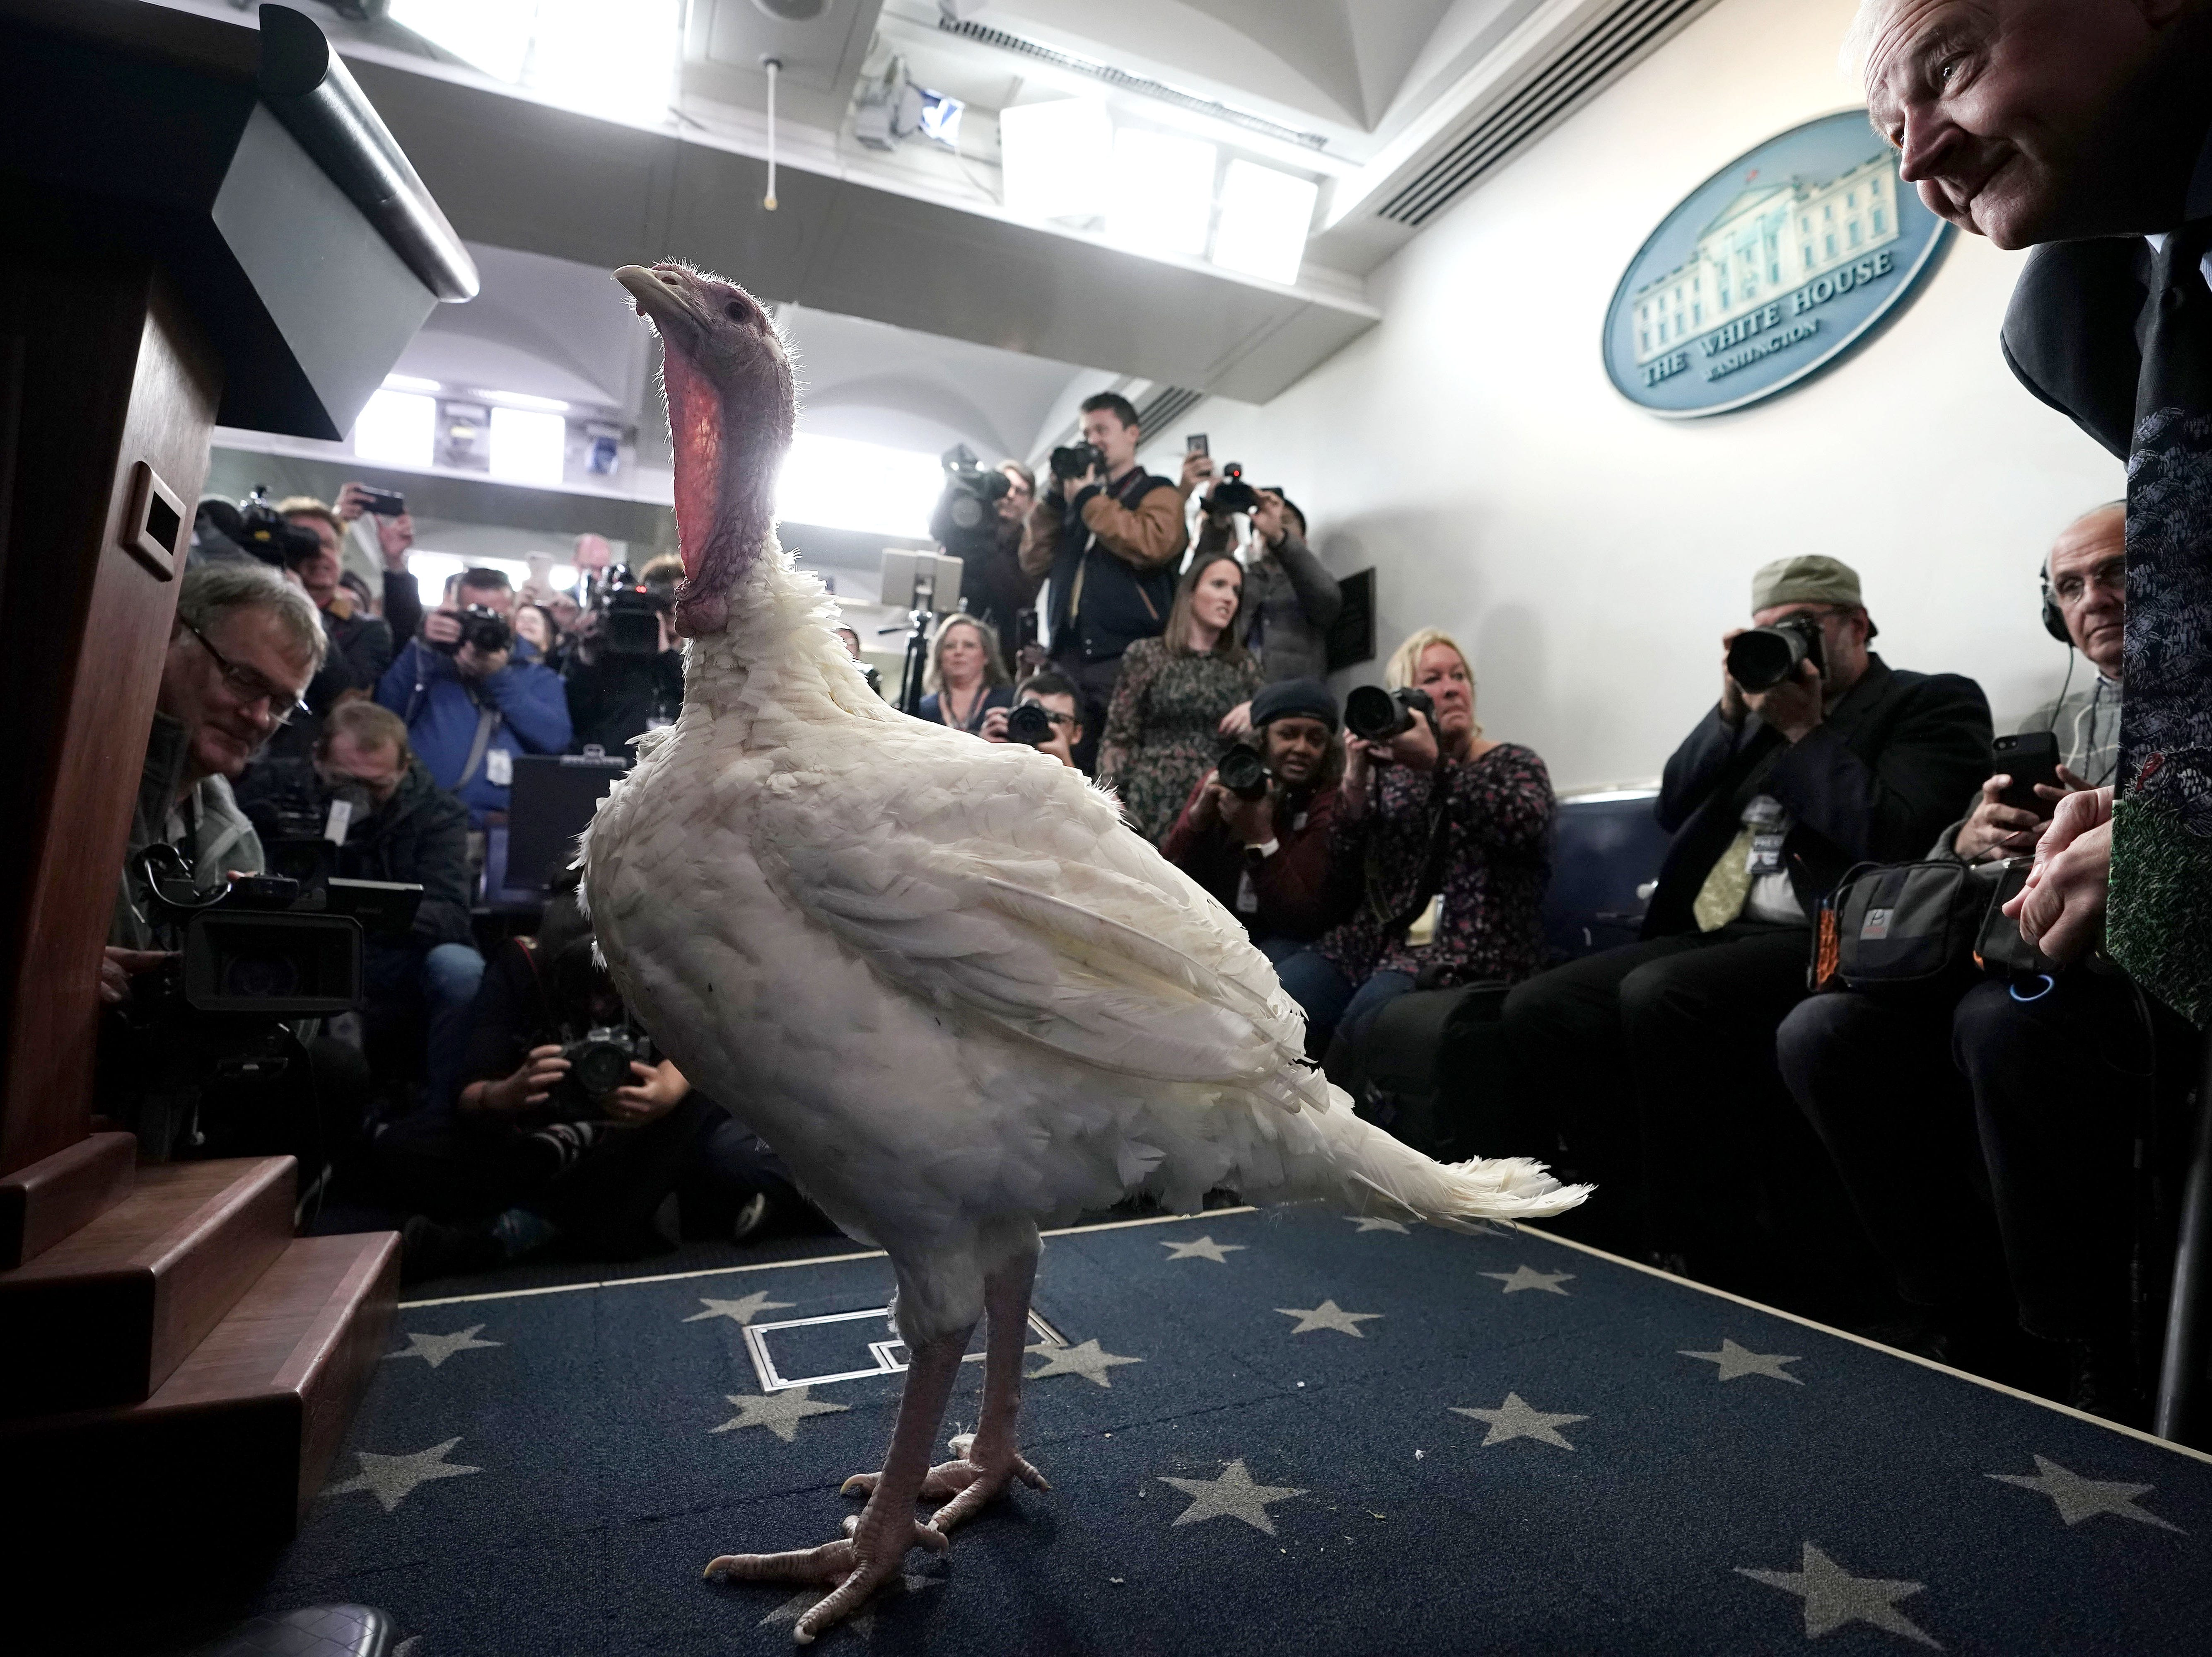 Jeff Sveen, chairman of the National Turkey Federation, watches one of the turkeys that will be pardoned as he brought it into the James Brady Press Briefing Room for a visit with members of the press November 20 at the White House in Washington, DC. The two turkeys, Peas and Carrots, are scheduled to be pardoned by U.S. President Donald Trump during an annual presidential tradition in the Rose Garden today.